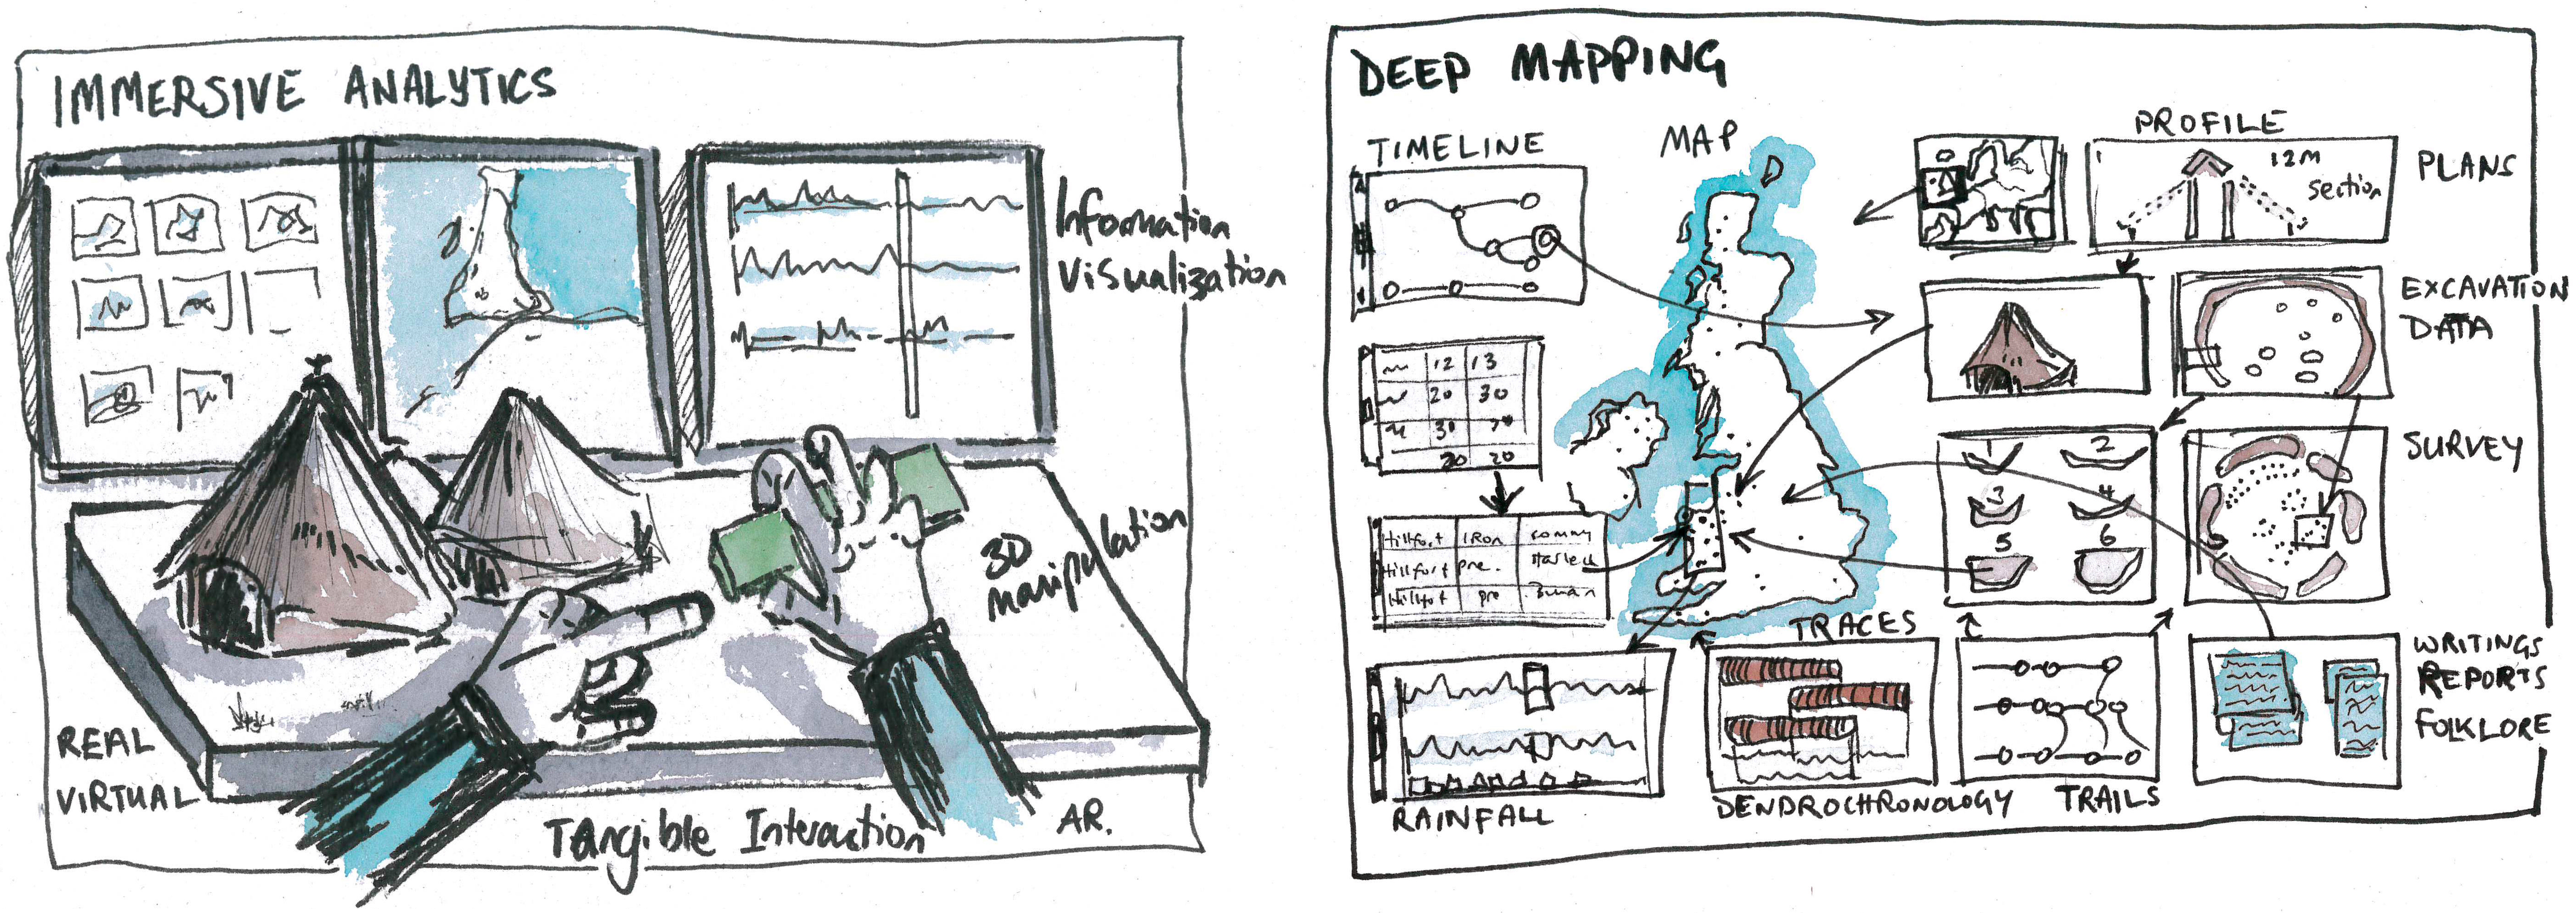 We present two visions. Immersive analytics where the user can use new-technologies to directly explore and the information. Deep maps, a way for experiencing a narrative through multi-faceted place-specific data.